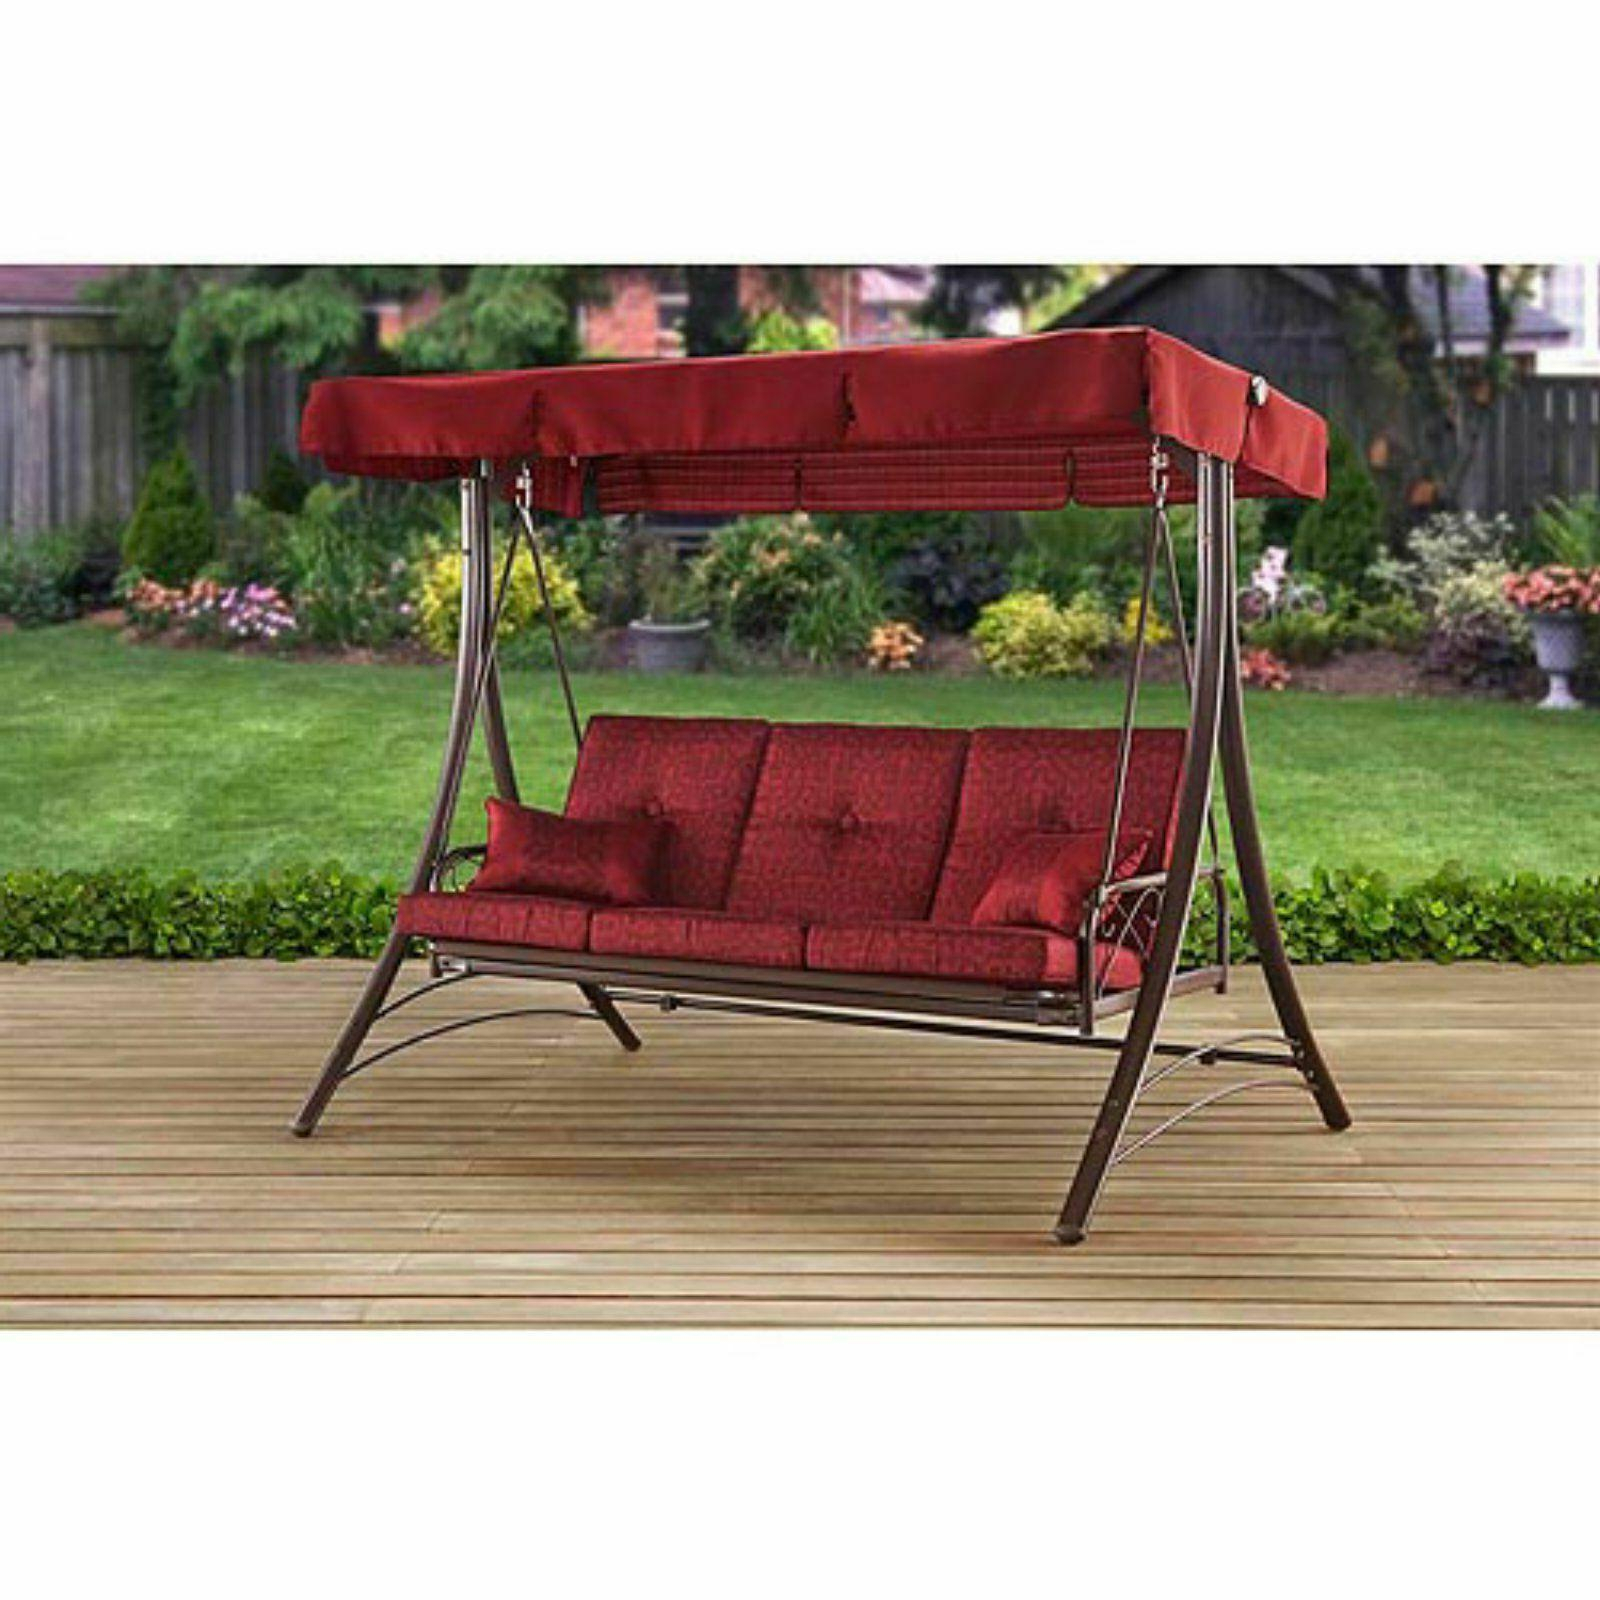 Front Porch Swing Set Outdoor Patio Swin With 2 Person Adjustable Tilt Canopy Patio Loveseat Porch Swings (Image 14 of 25)